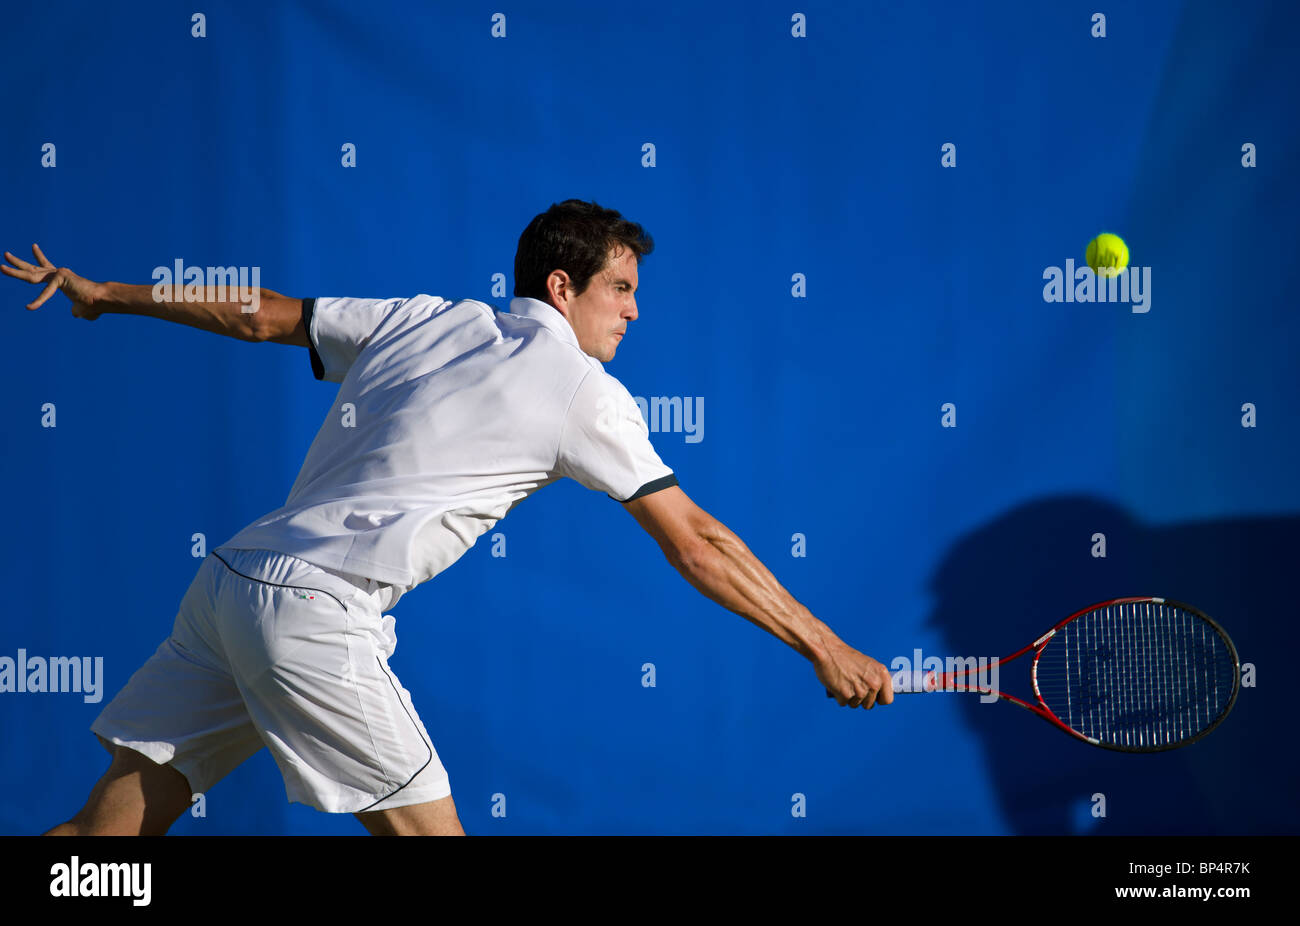 Guillermo Garcia-Lopez of Spain in action against J Benneteau. - Stock Image